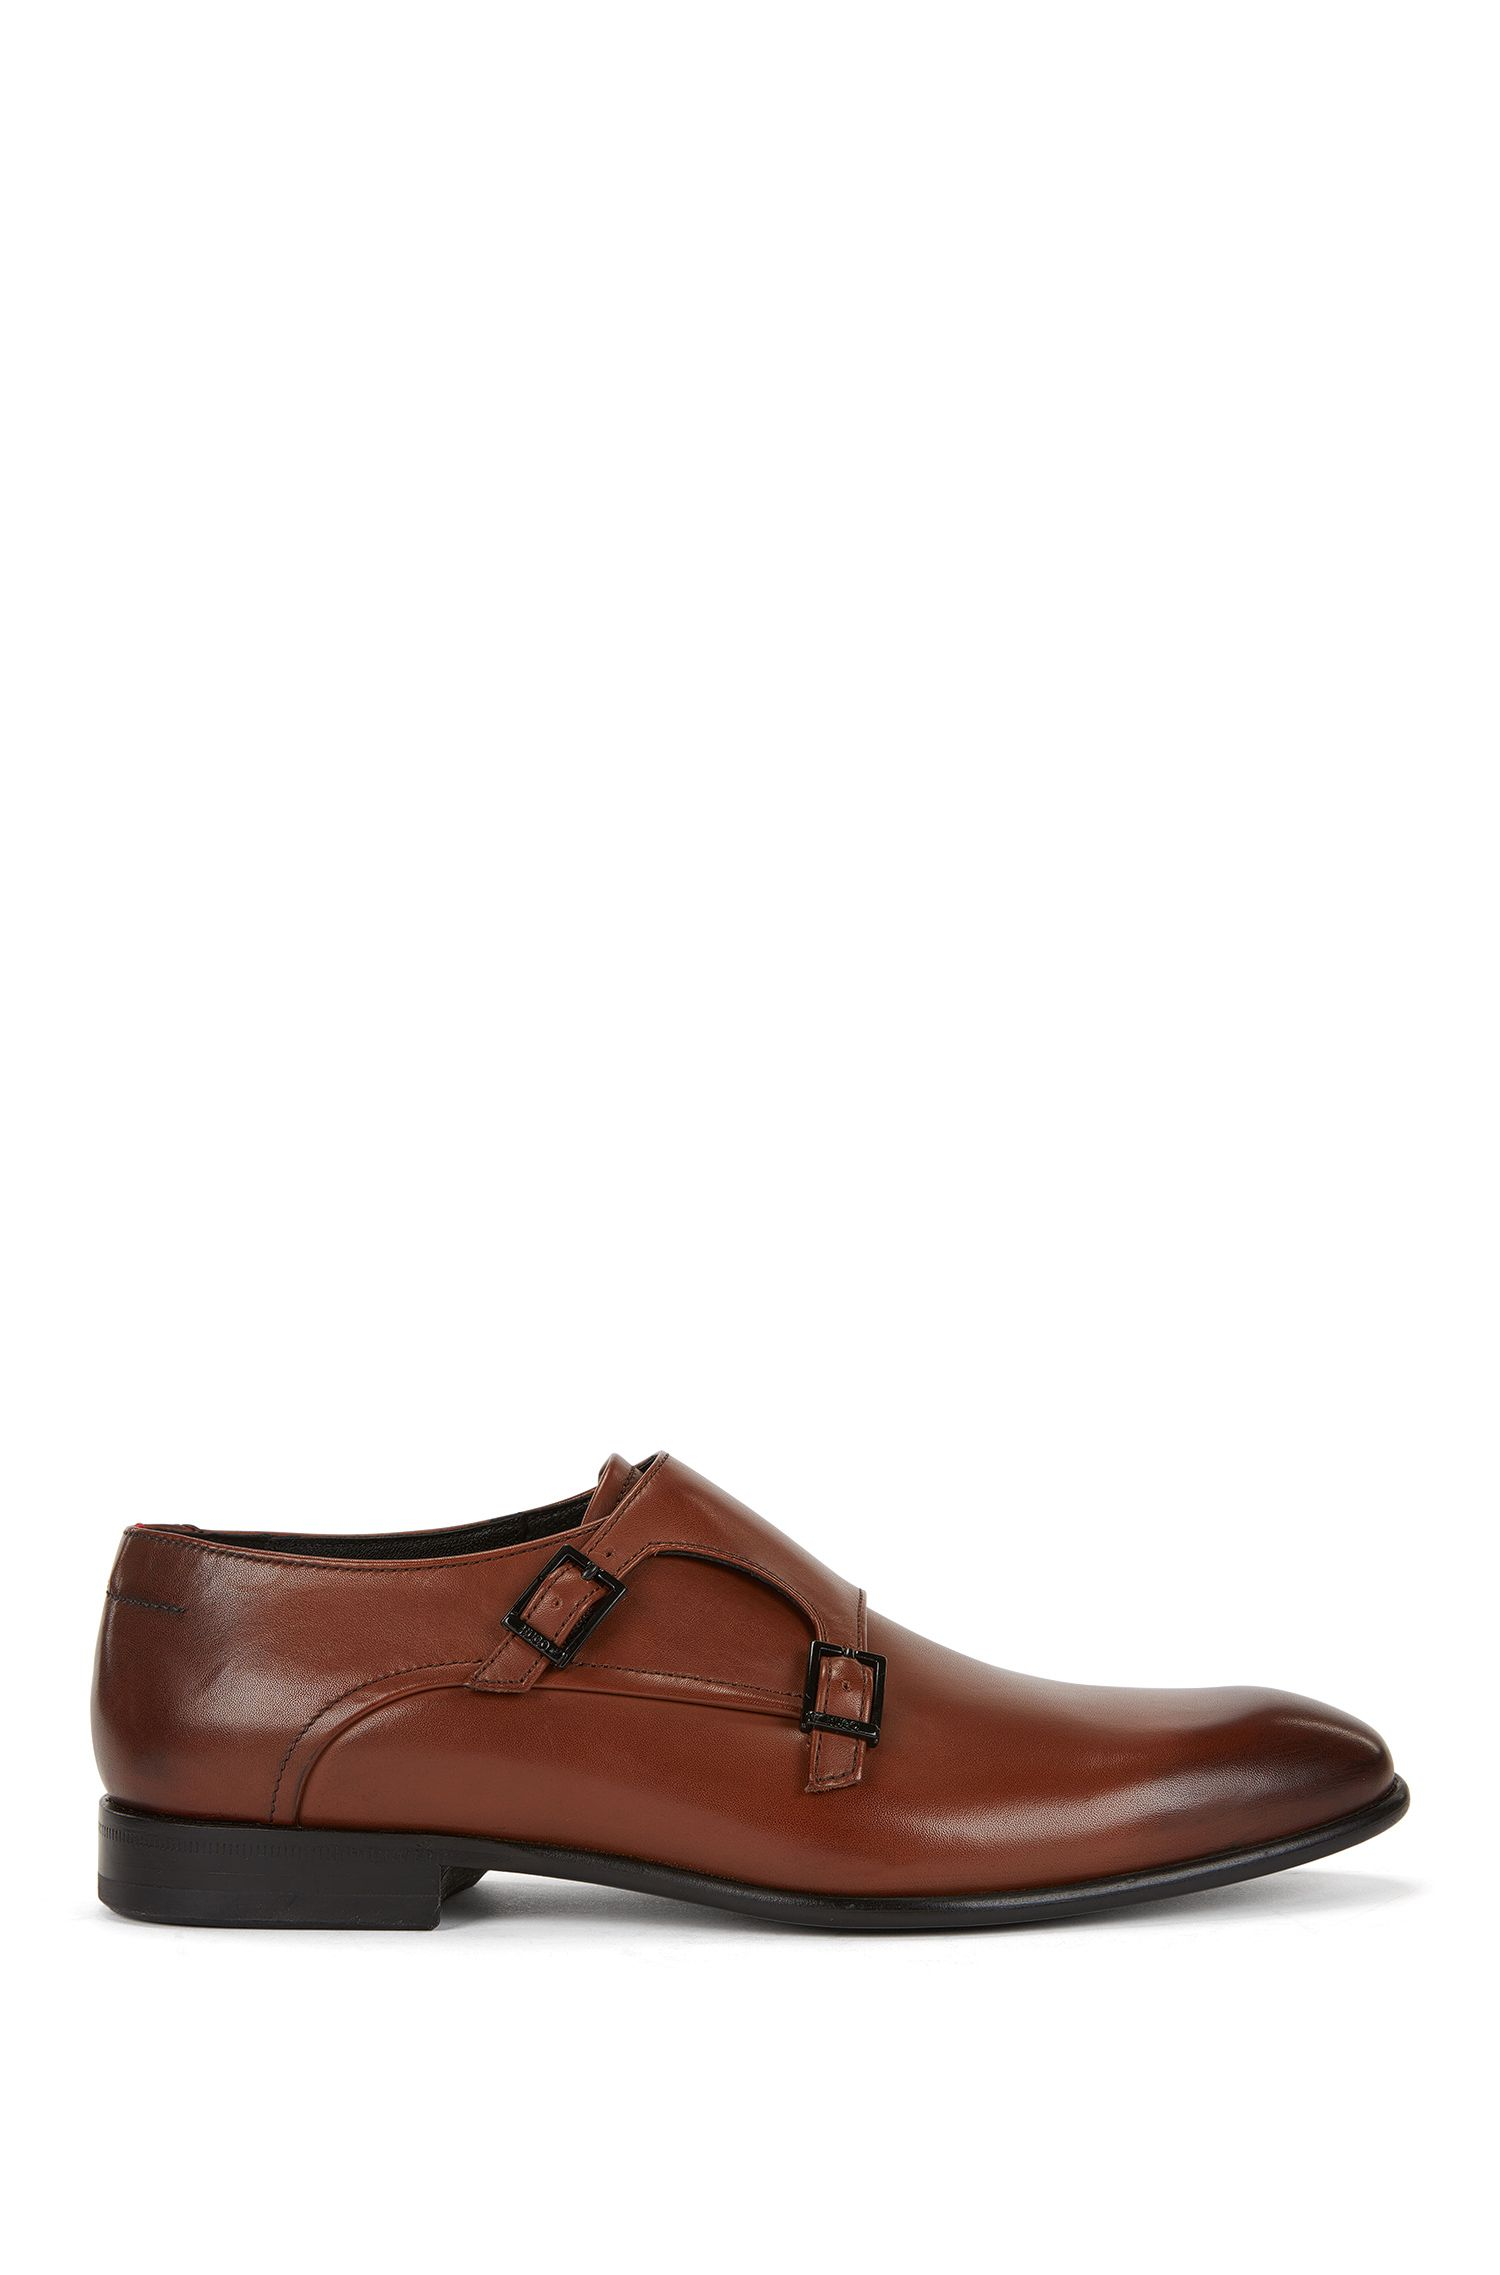 Double monk shoes in burnished calf leather